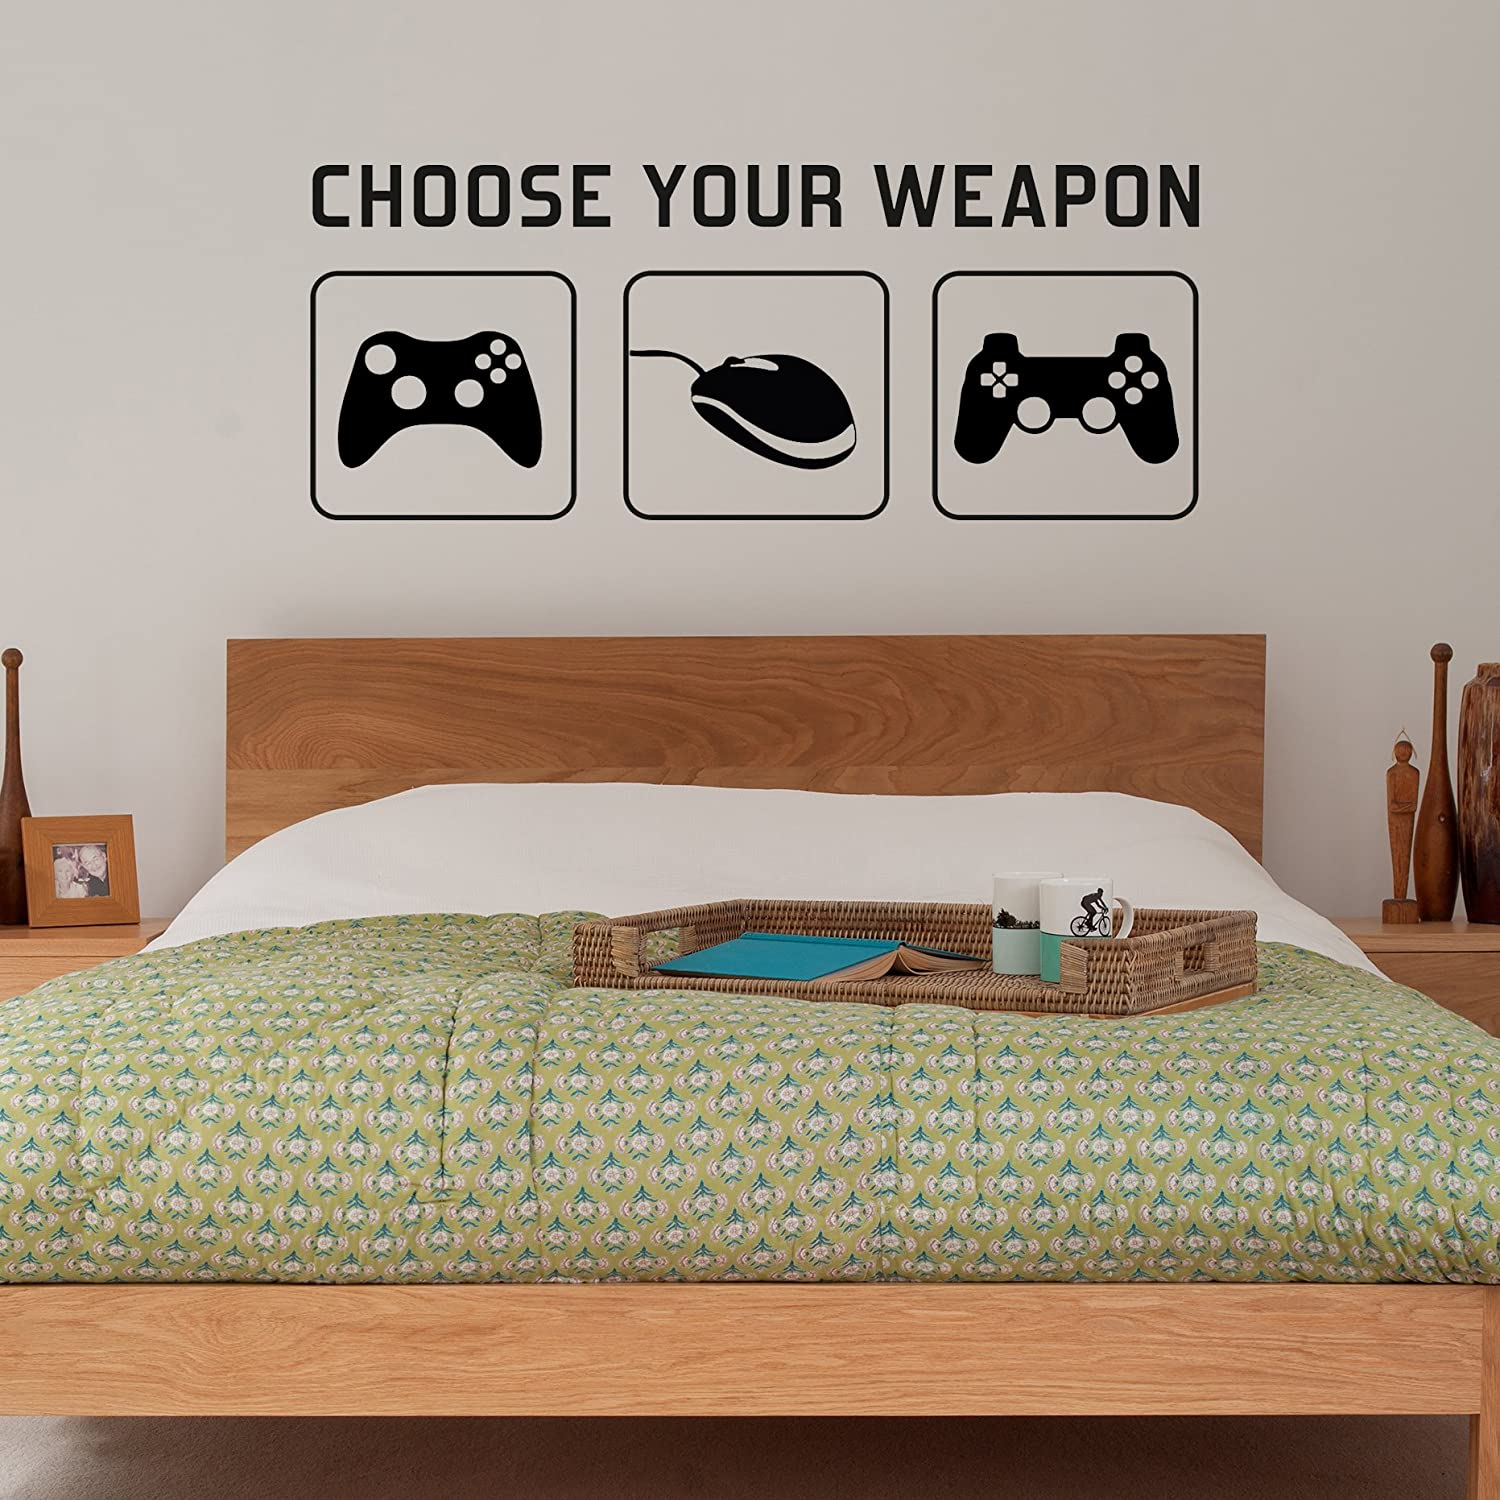 Radecal CHOOSE YOUR WEAPON Video Game Gaming Vinyl Decal Wall